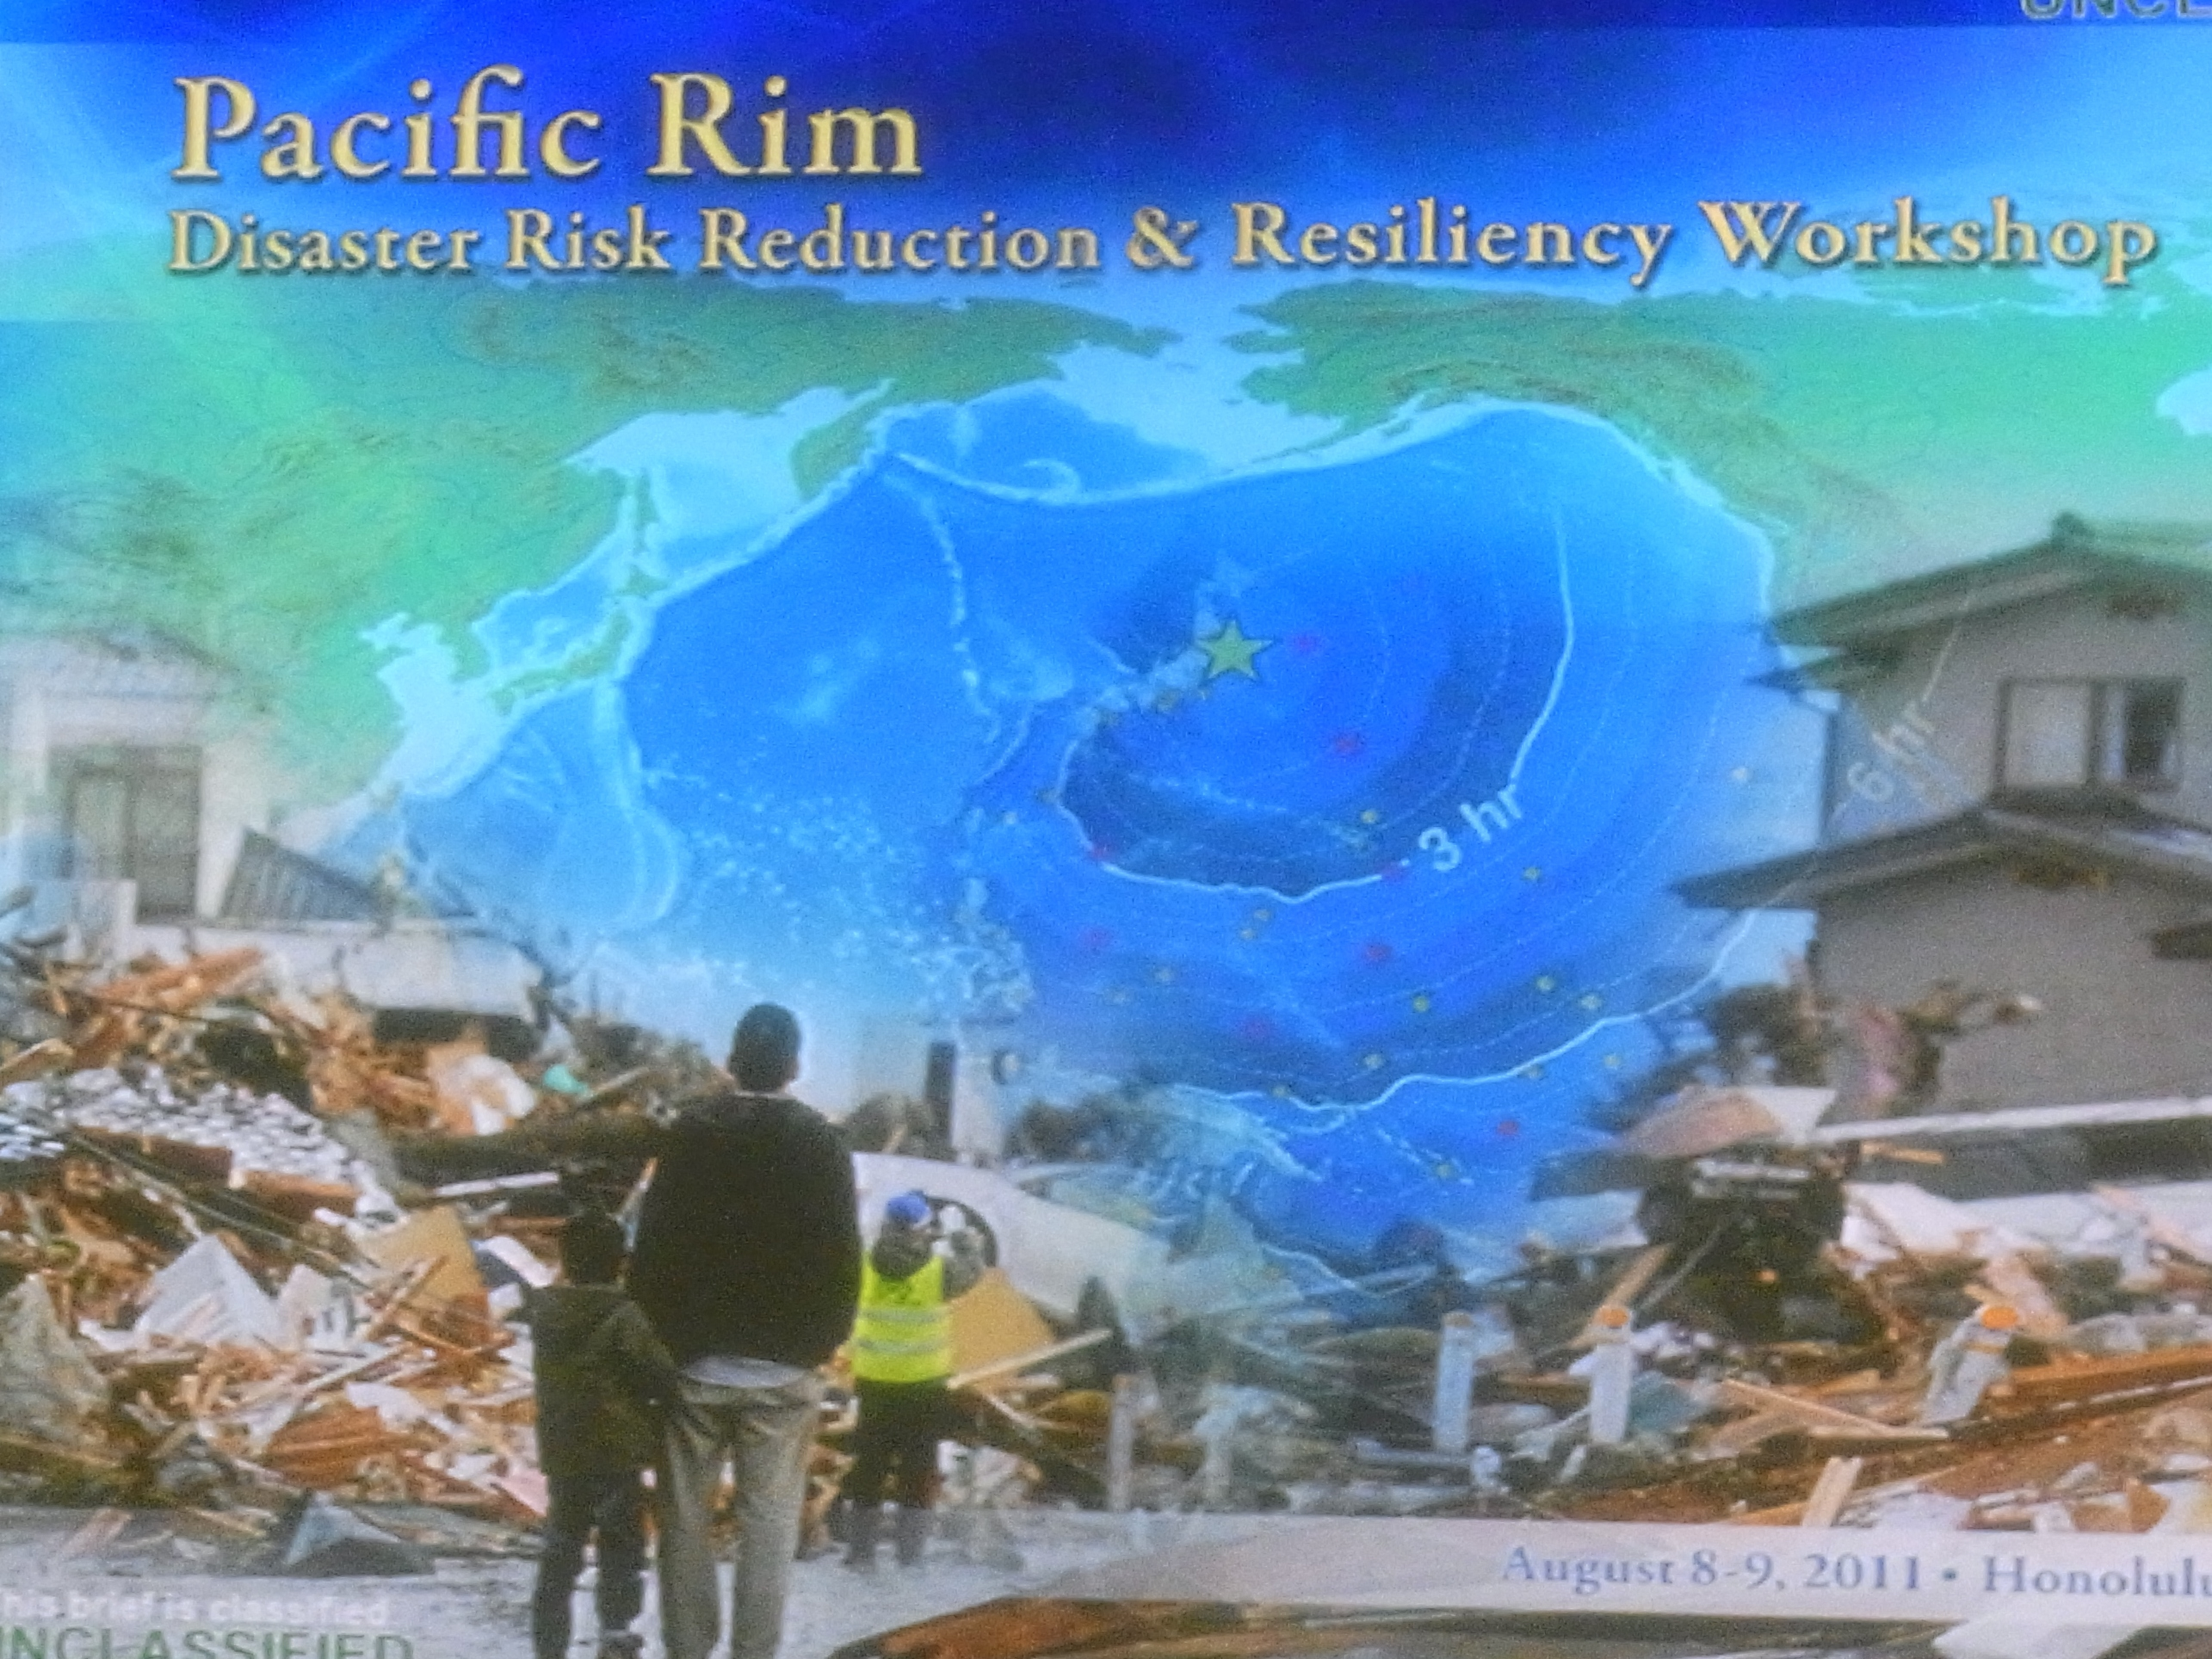 Pacific Rim Disaster Risk Reduction & Resiliency Workshop 参加報告